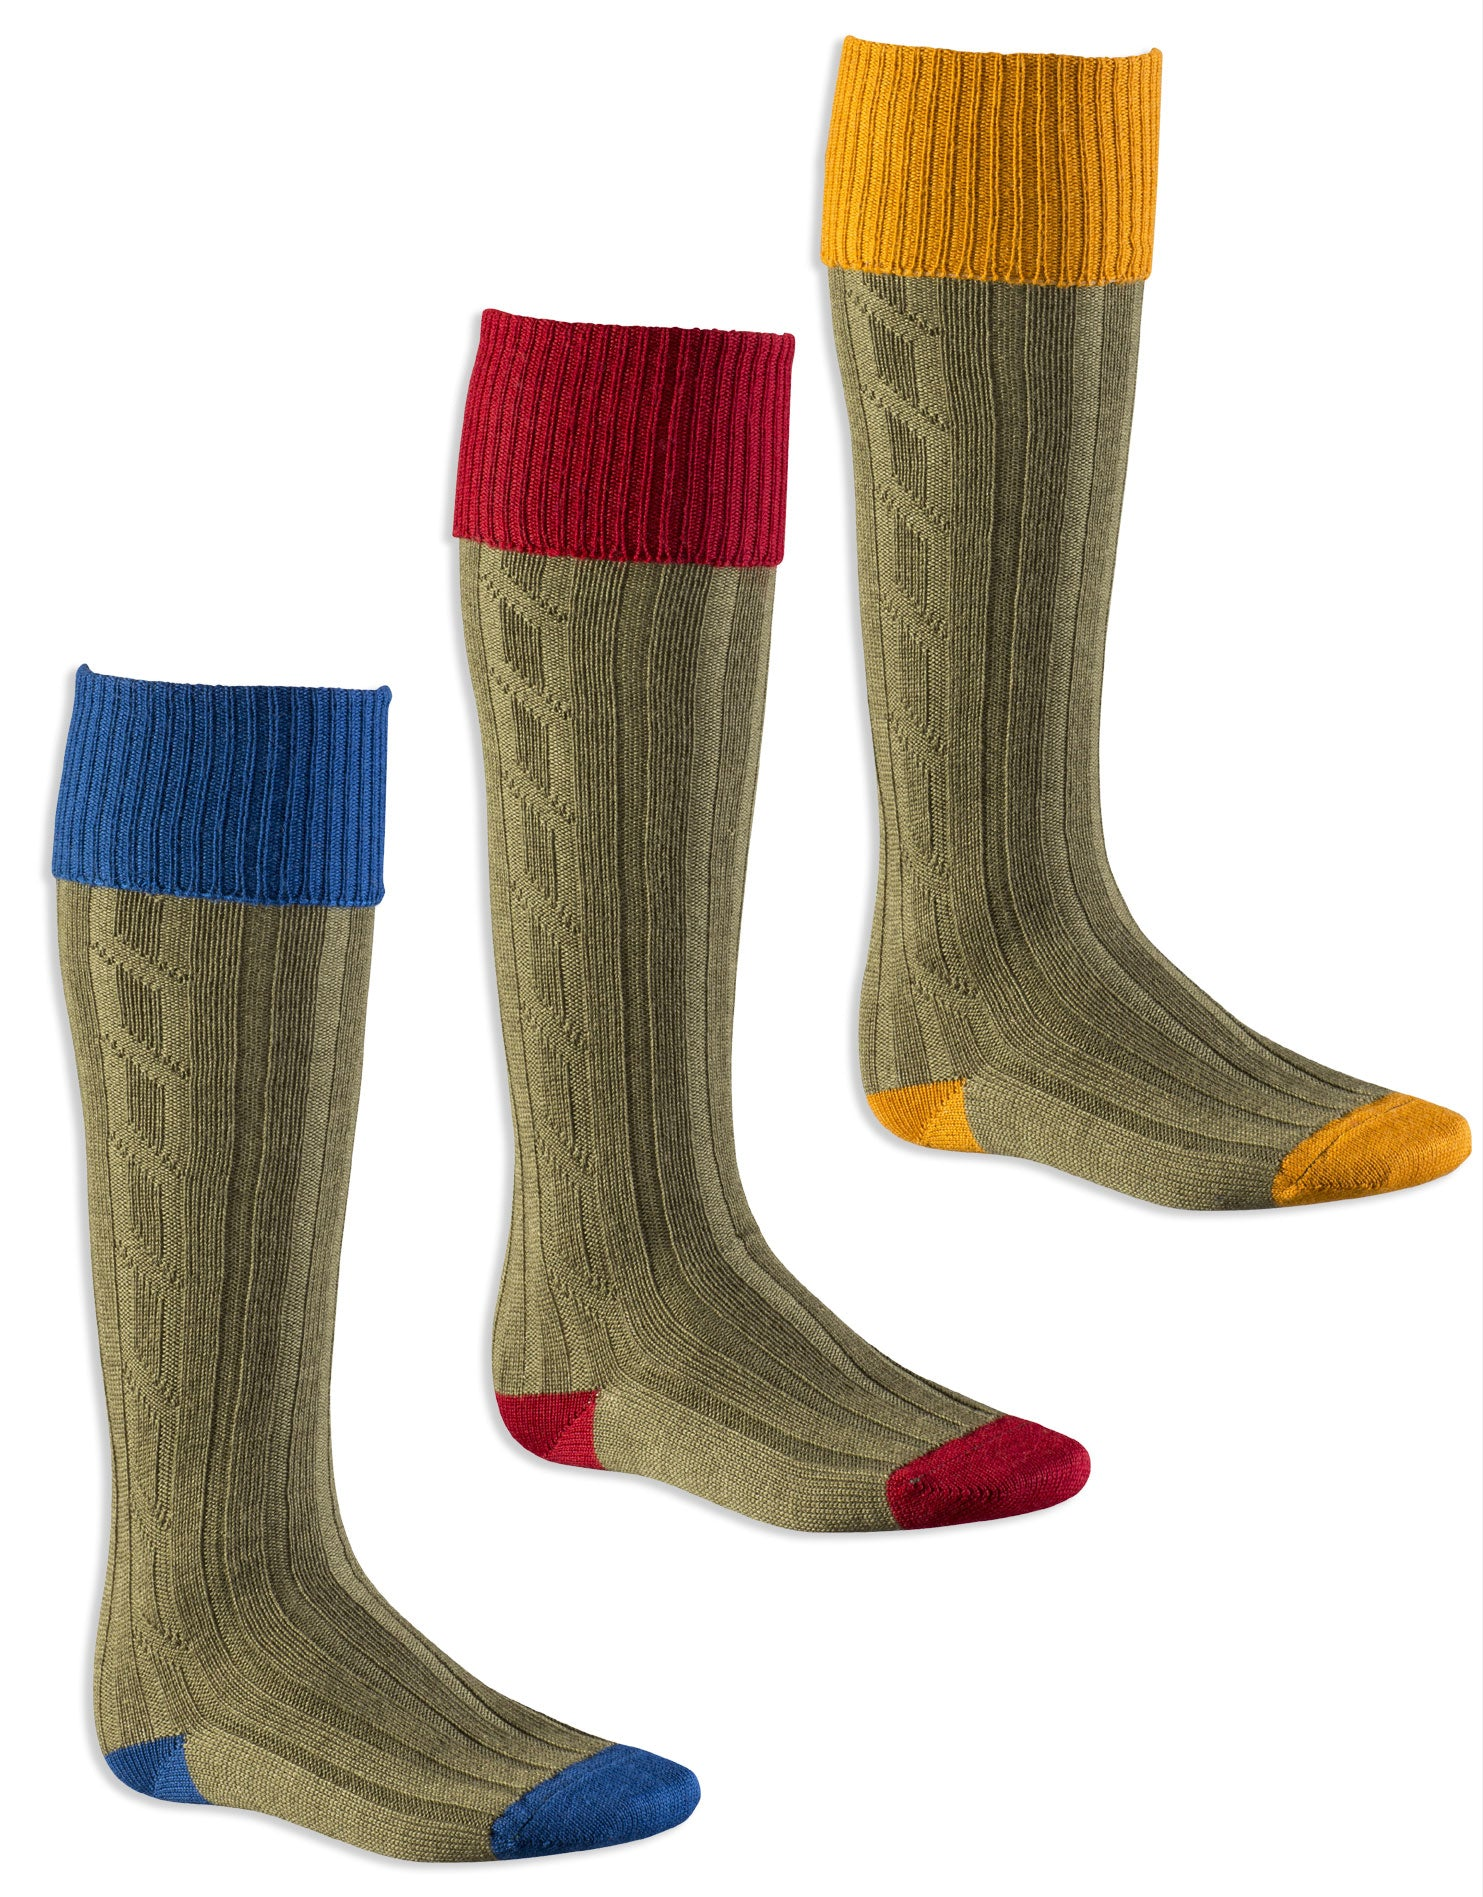 Contrast Heel & Toe Shooting Sock by Alan Paine